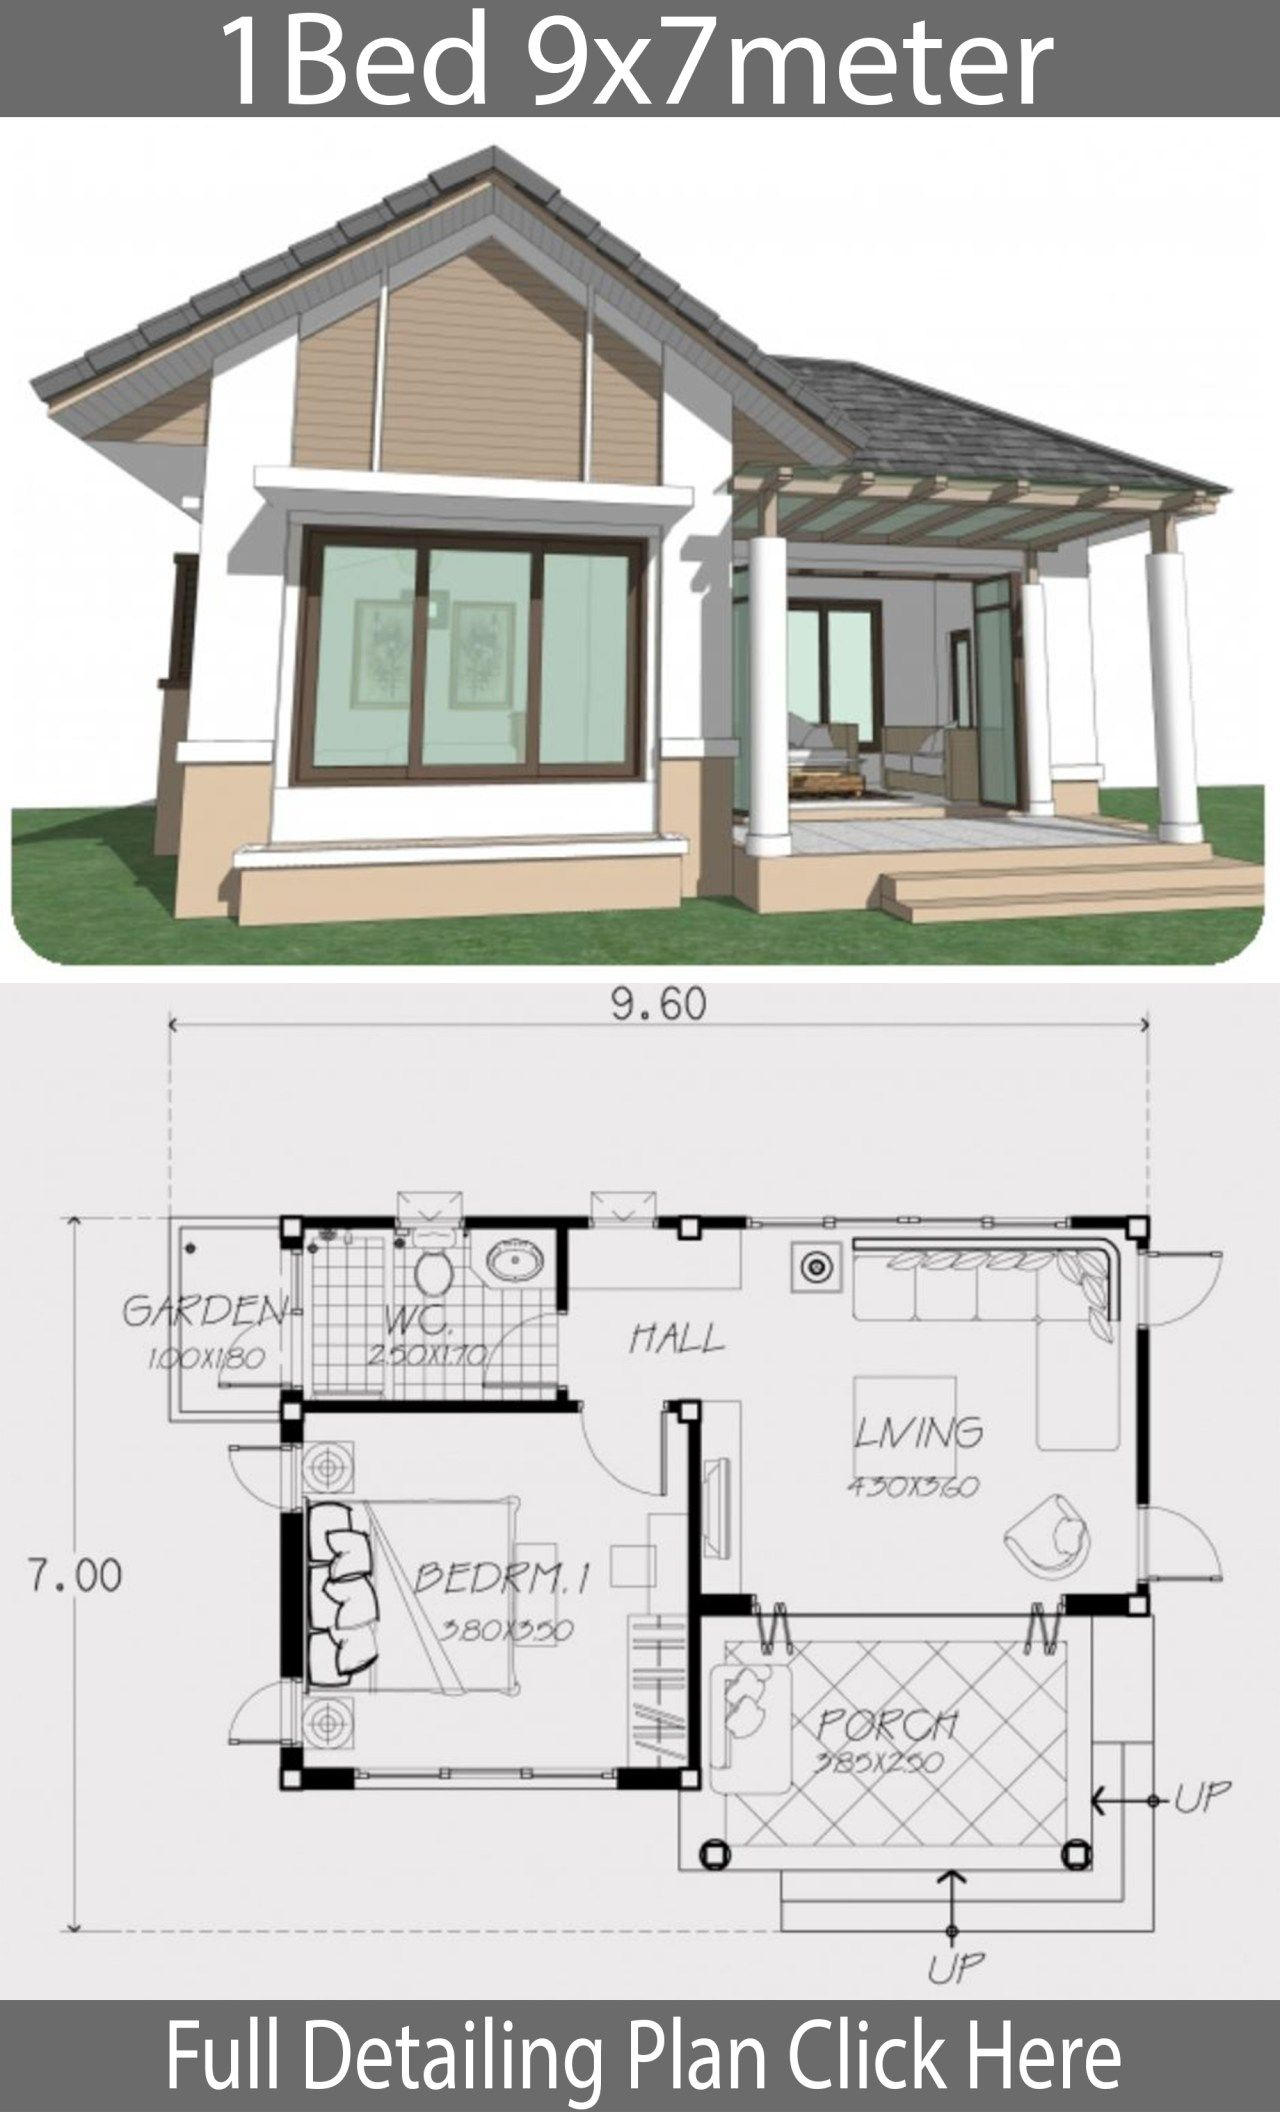 Home Design Plan 9x7m With One Bedroom Home Ideas Home Design Plan House With Porch House Design